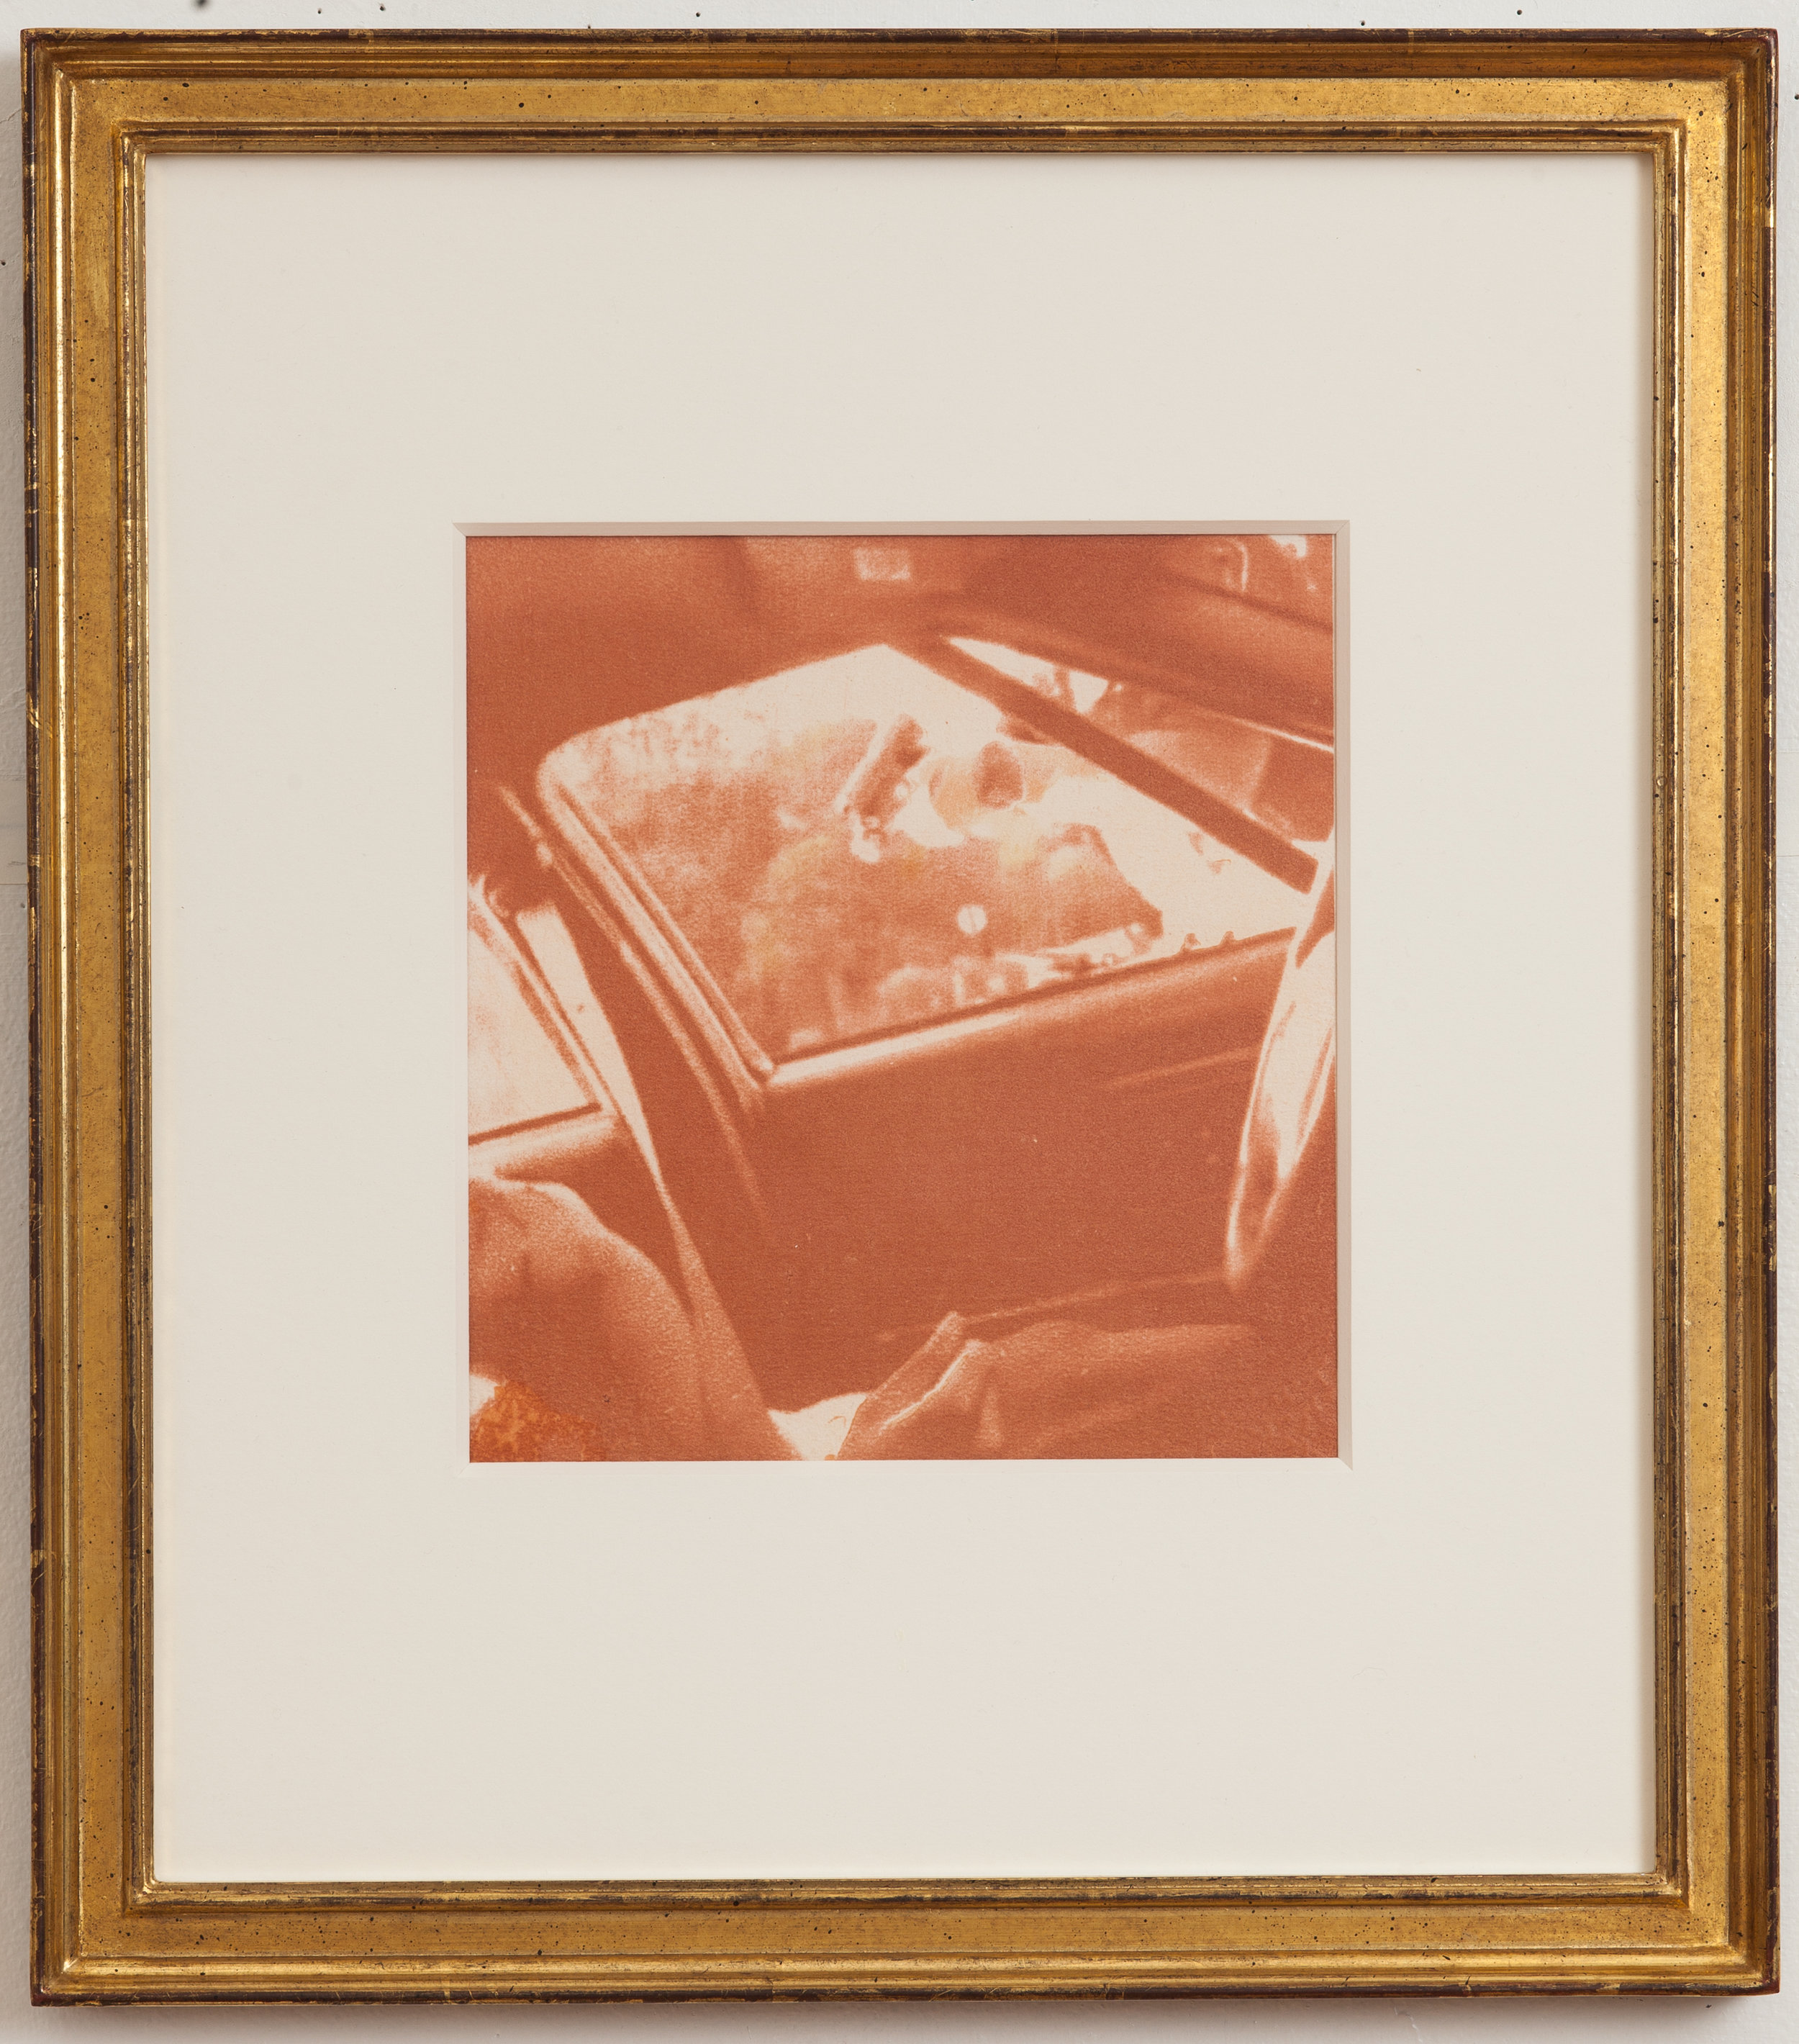 Zorawar Sidhu   Death of Philando Castile  from the series  Ideal Violence,      2019 Sanguine, haematite, earth pigments, and gum bichromate on handmade cotton-linen paper Sheet: 8 1/2 x 8 inches Printed and published by the artist Edition: Unique Courtesy of the artist